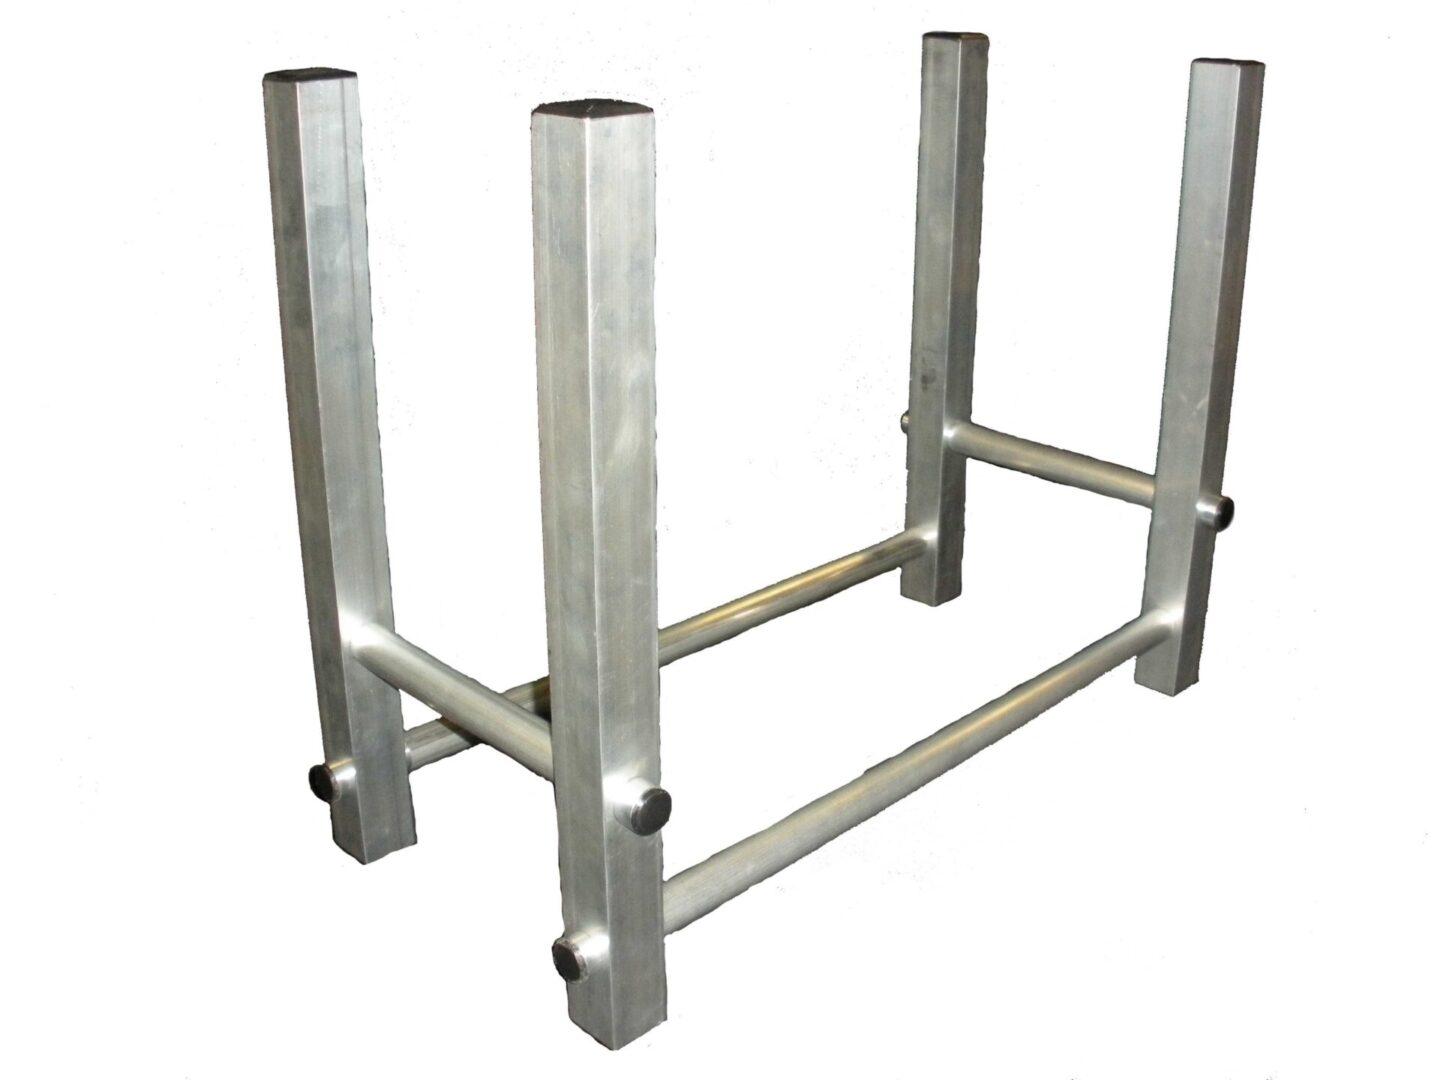 TFH-1 transportable firewood holder aluminum frame